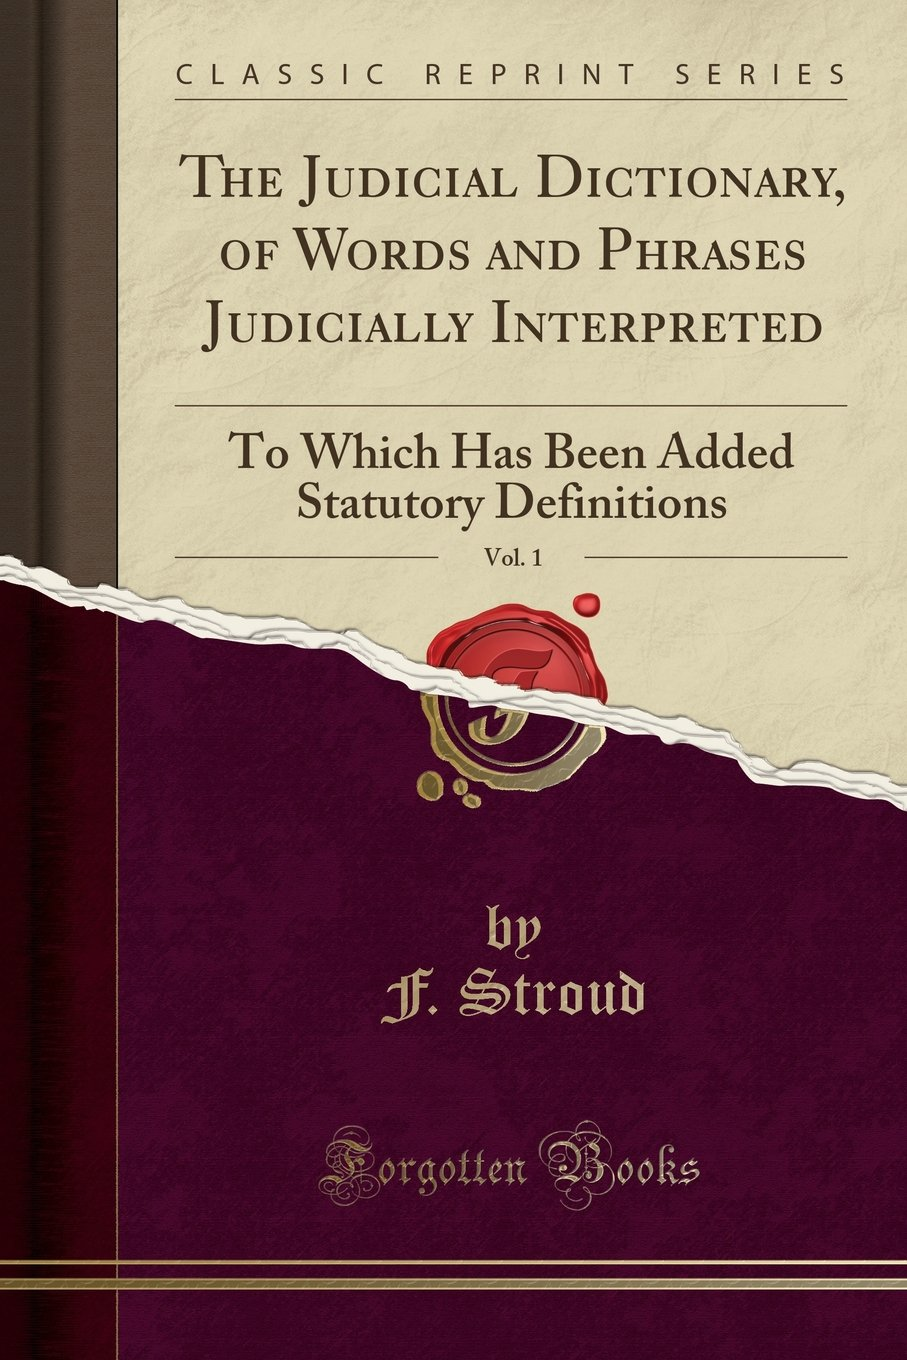 Download The Judicial Dictionary, of Words and Phrases Judicially Interpreted, Vol. 1: To Which Has Been Added Statutory Definitions (Classic Reprint) pdf